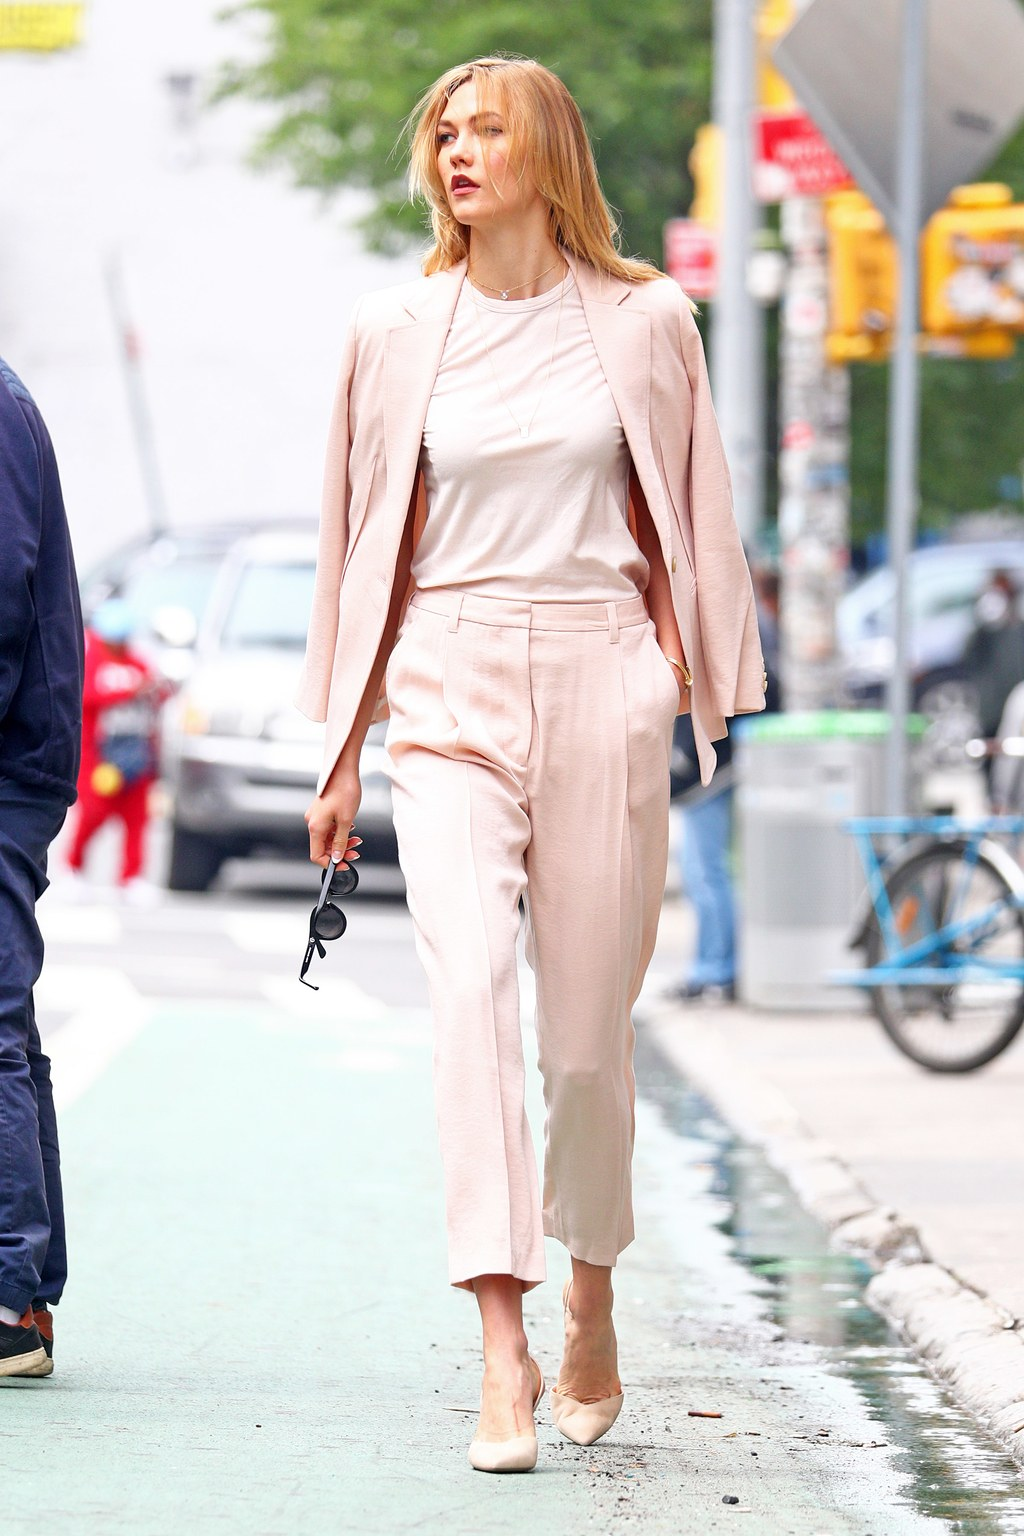 EXCLUSIVE: Karlie Kloss spotted wearing a pastel baby pink suit and T Shirt in NYC